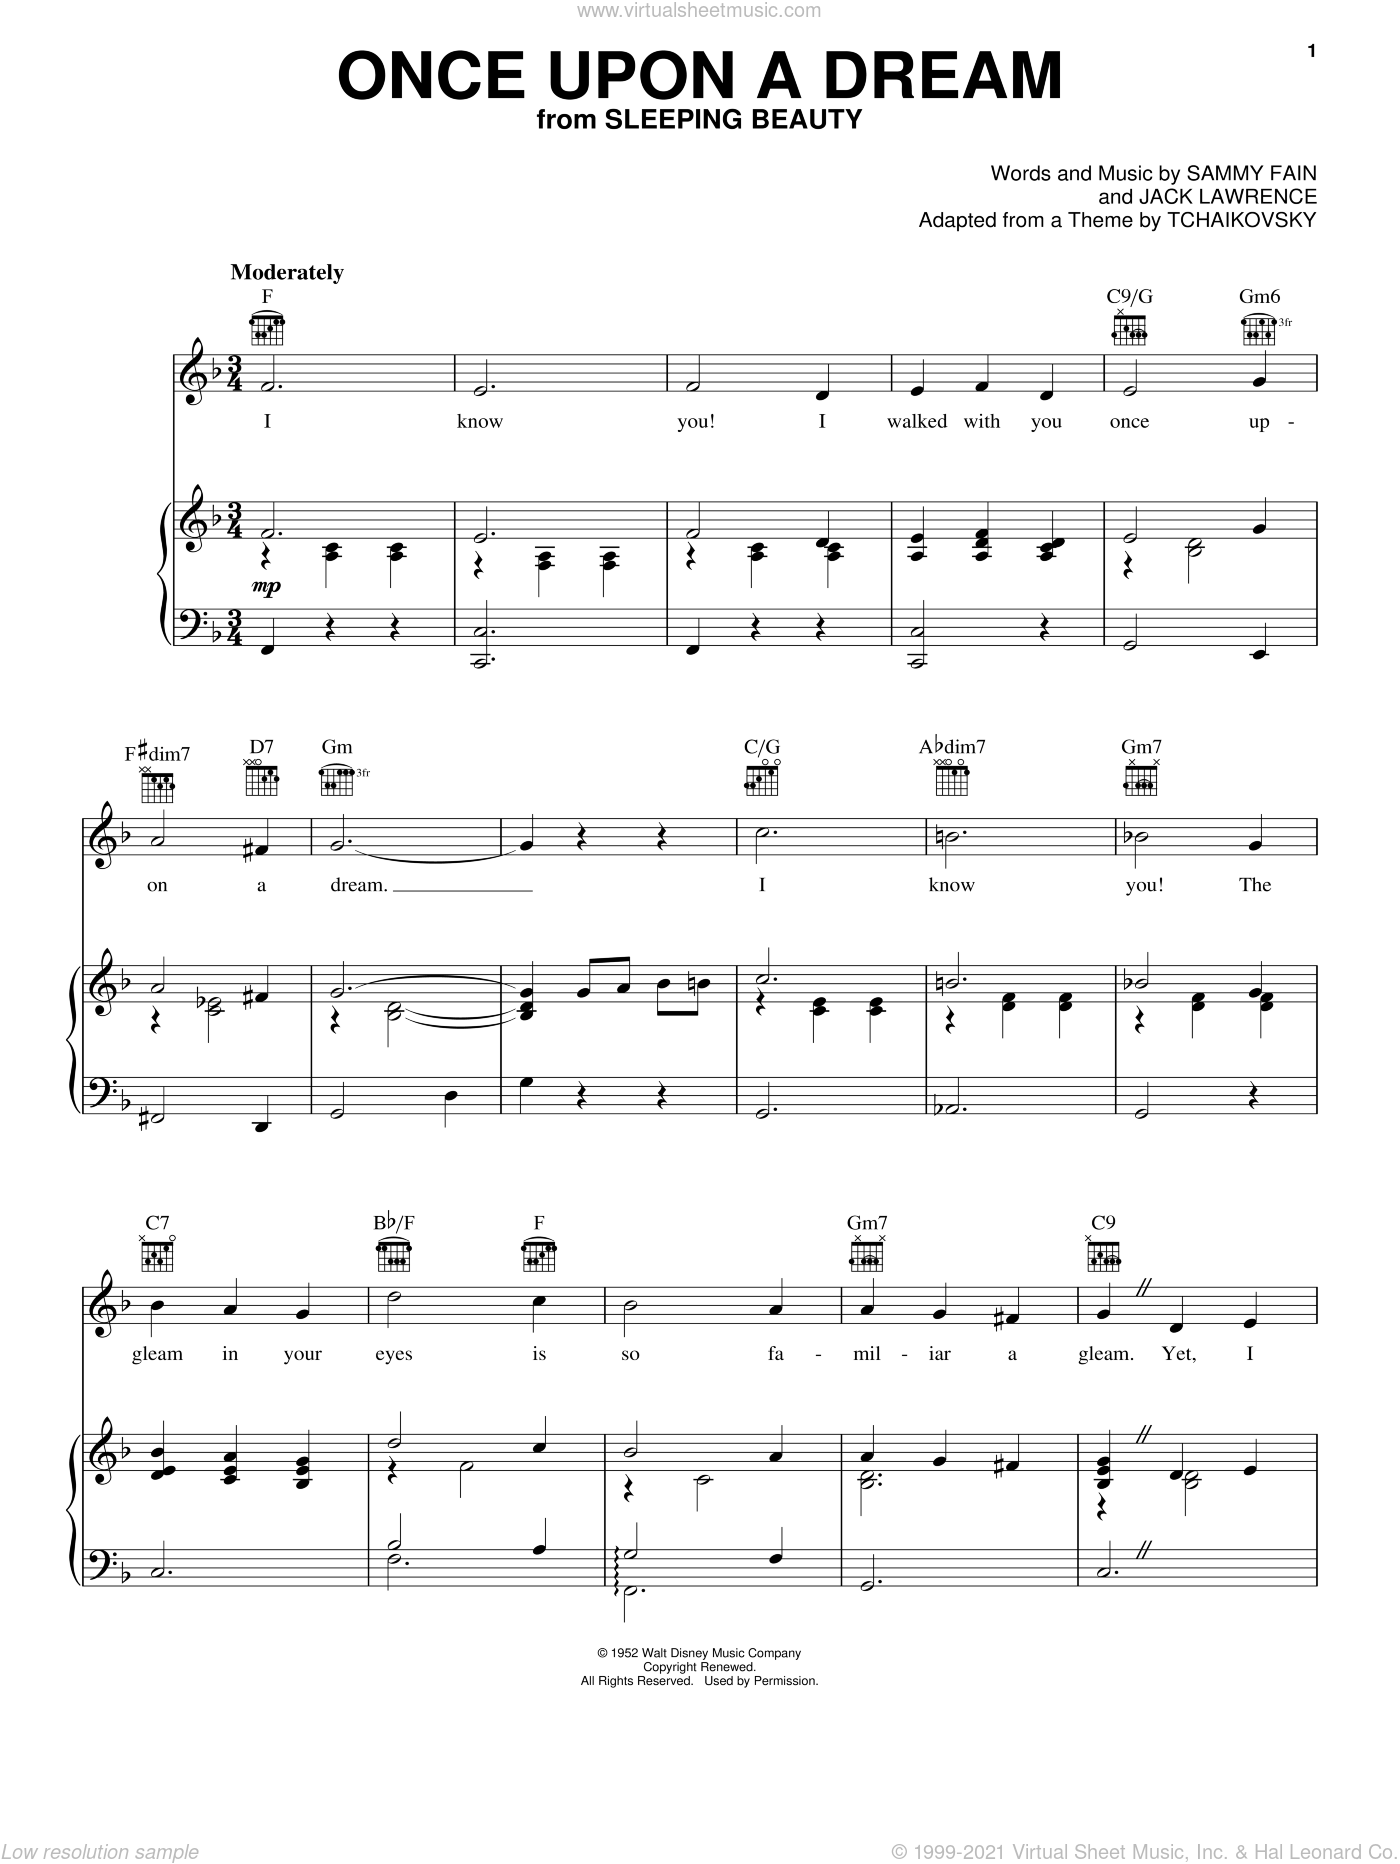 Once Upon A Dream sheet music for voice, piano or guitar by Sammy Fain and Jack Lawrence, intermediate skill level